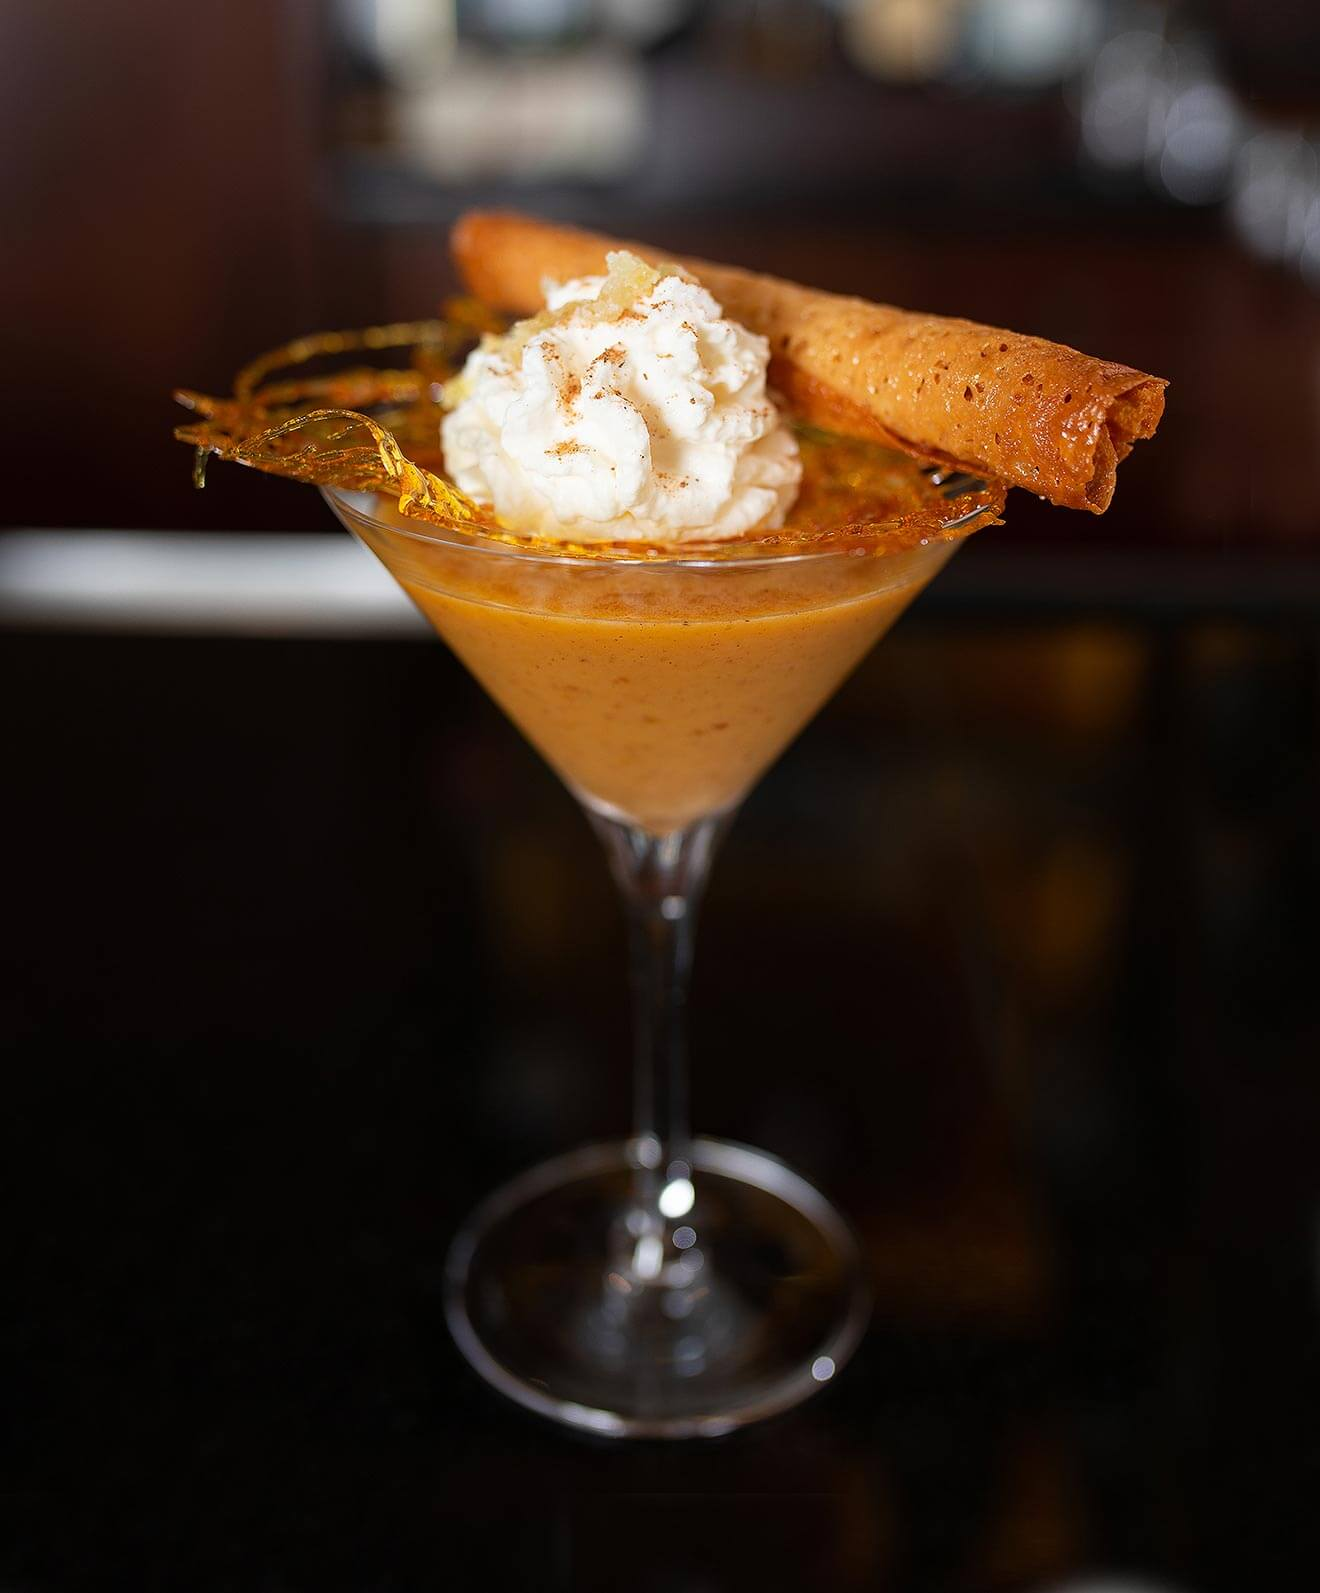 The Great Pocono Pumpkin Spiced Martini, martini cocktailwith garnish and whipped cream